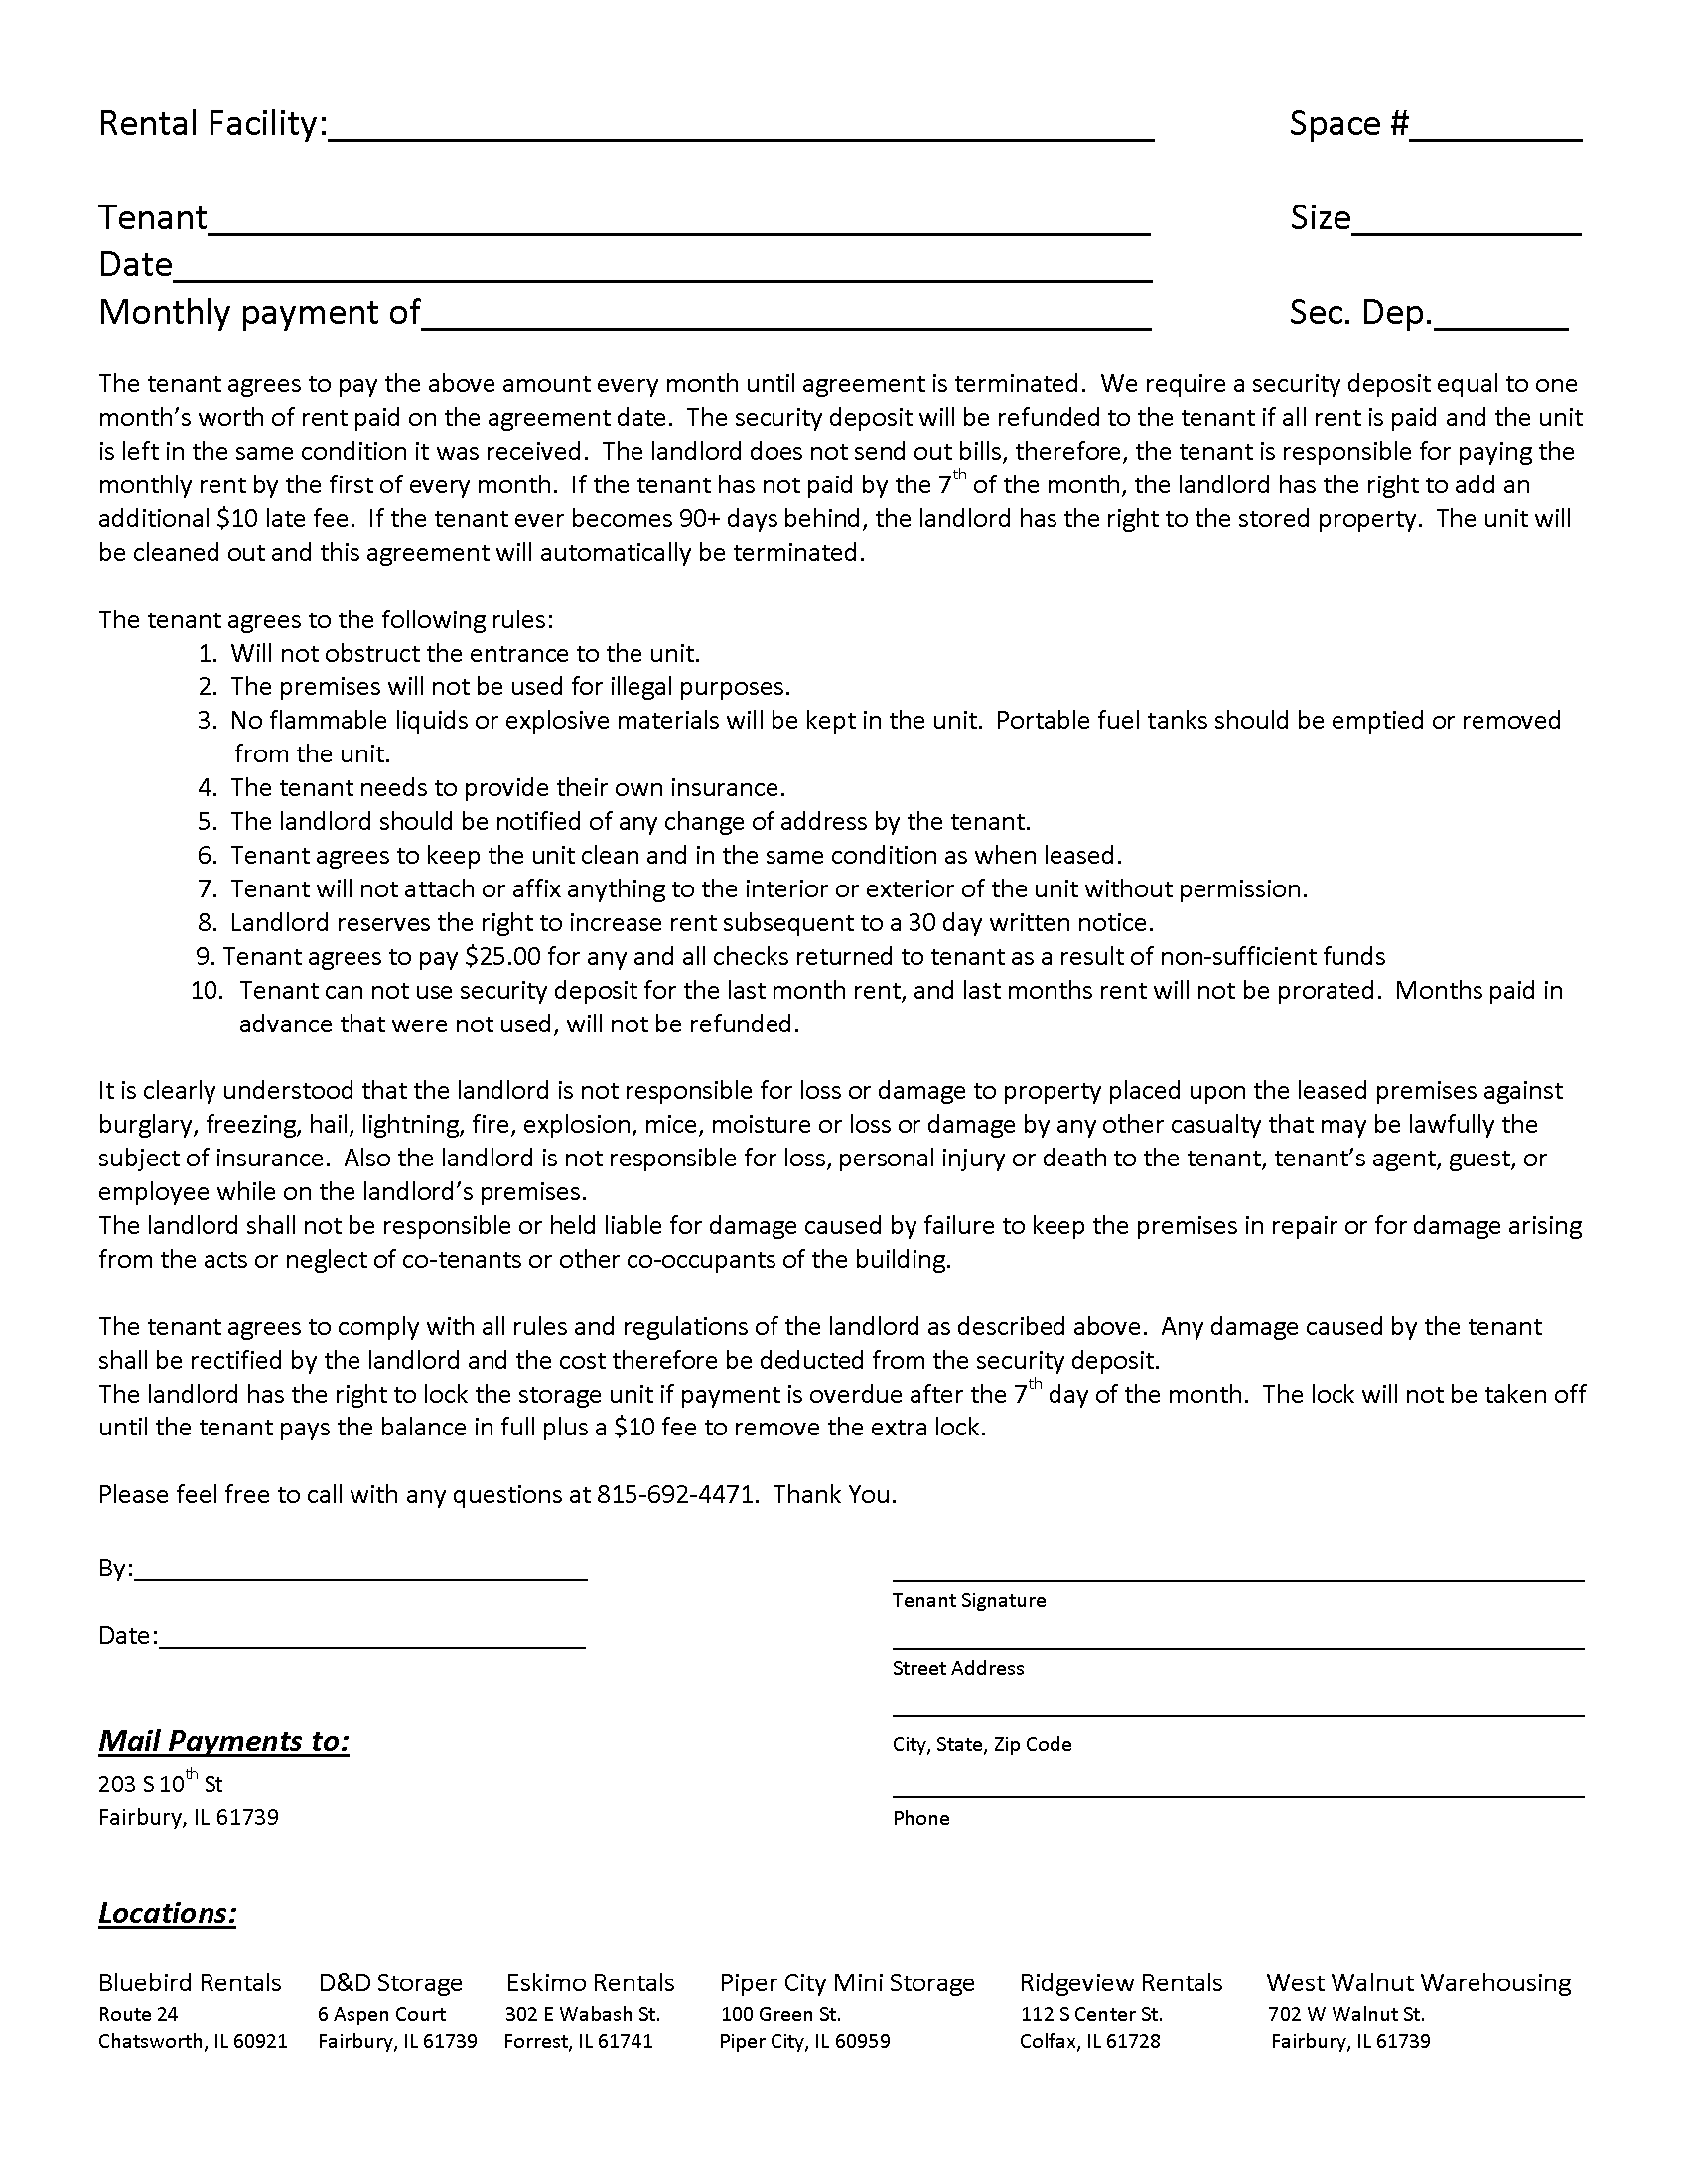 Basement rental agreement form best photos of printable for Basement forms